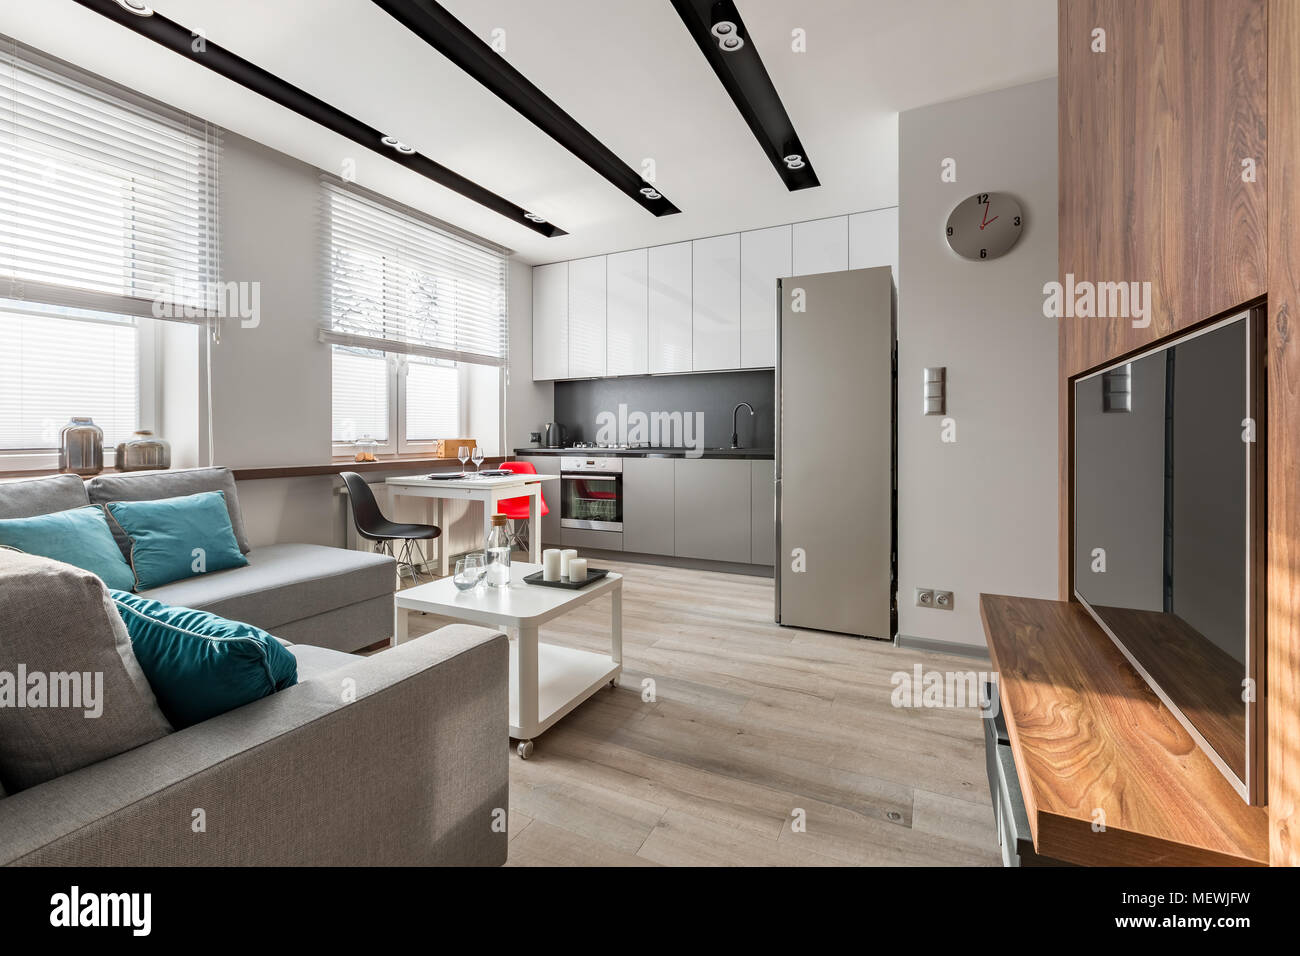 Contemporary Home Interior With Tv Living Room And Open Kitchen   Stock  Image